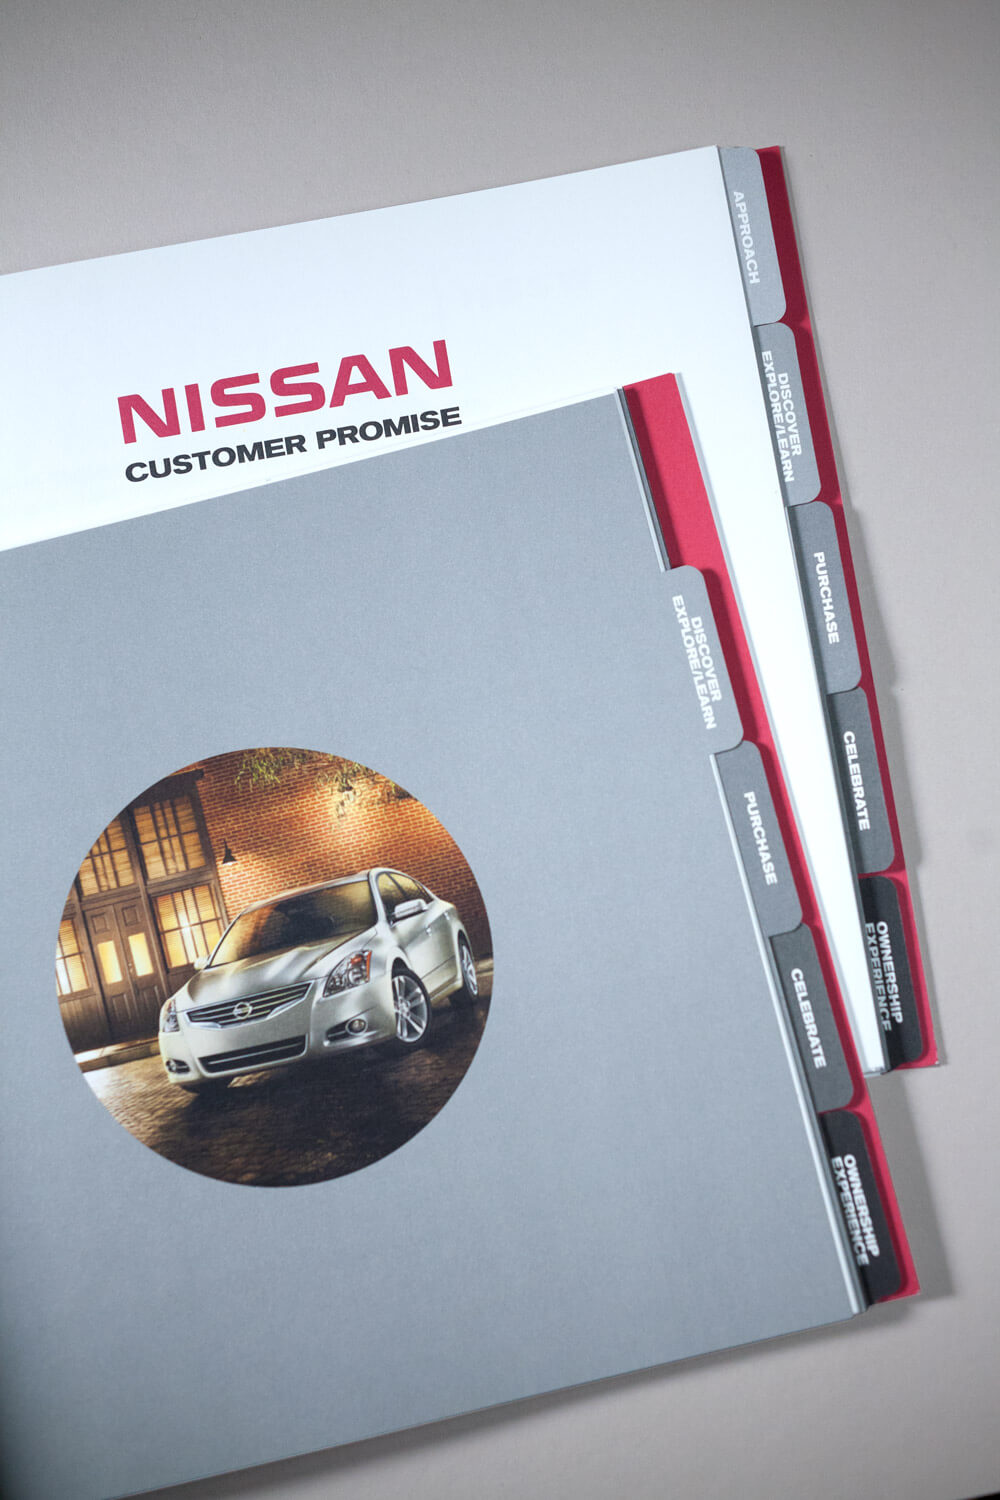 Nissan Sales and Service Way Sales Consultant Incentive Program Brochure